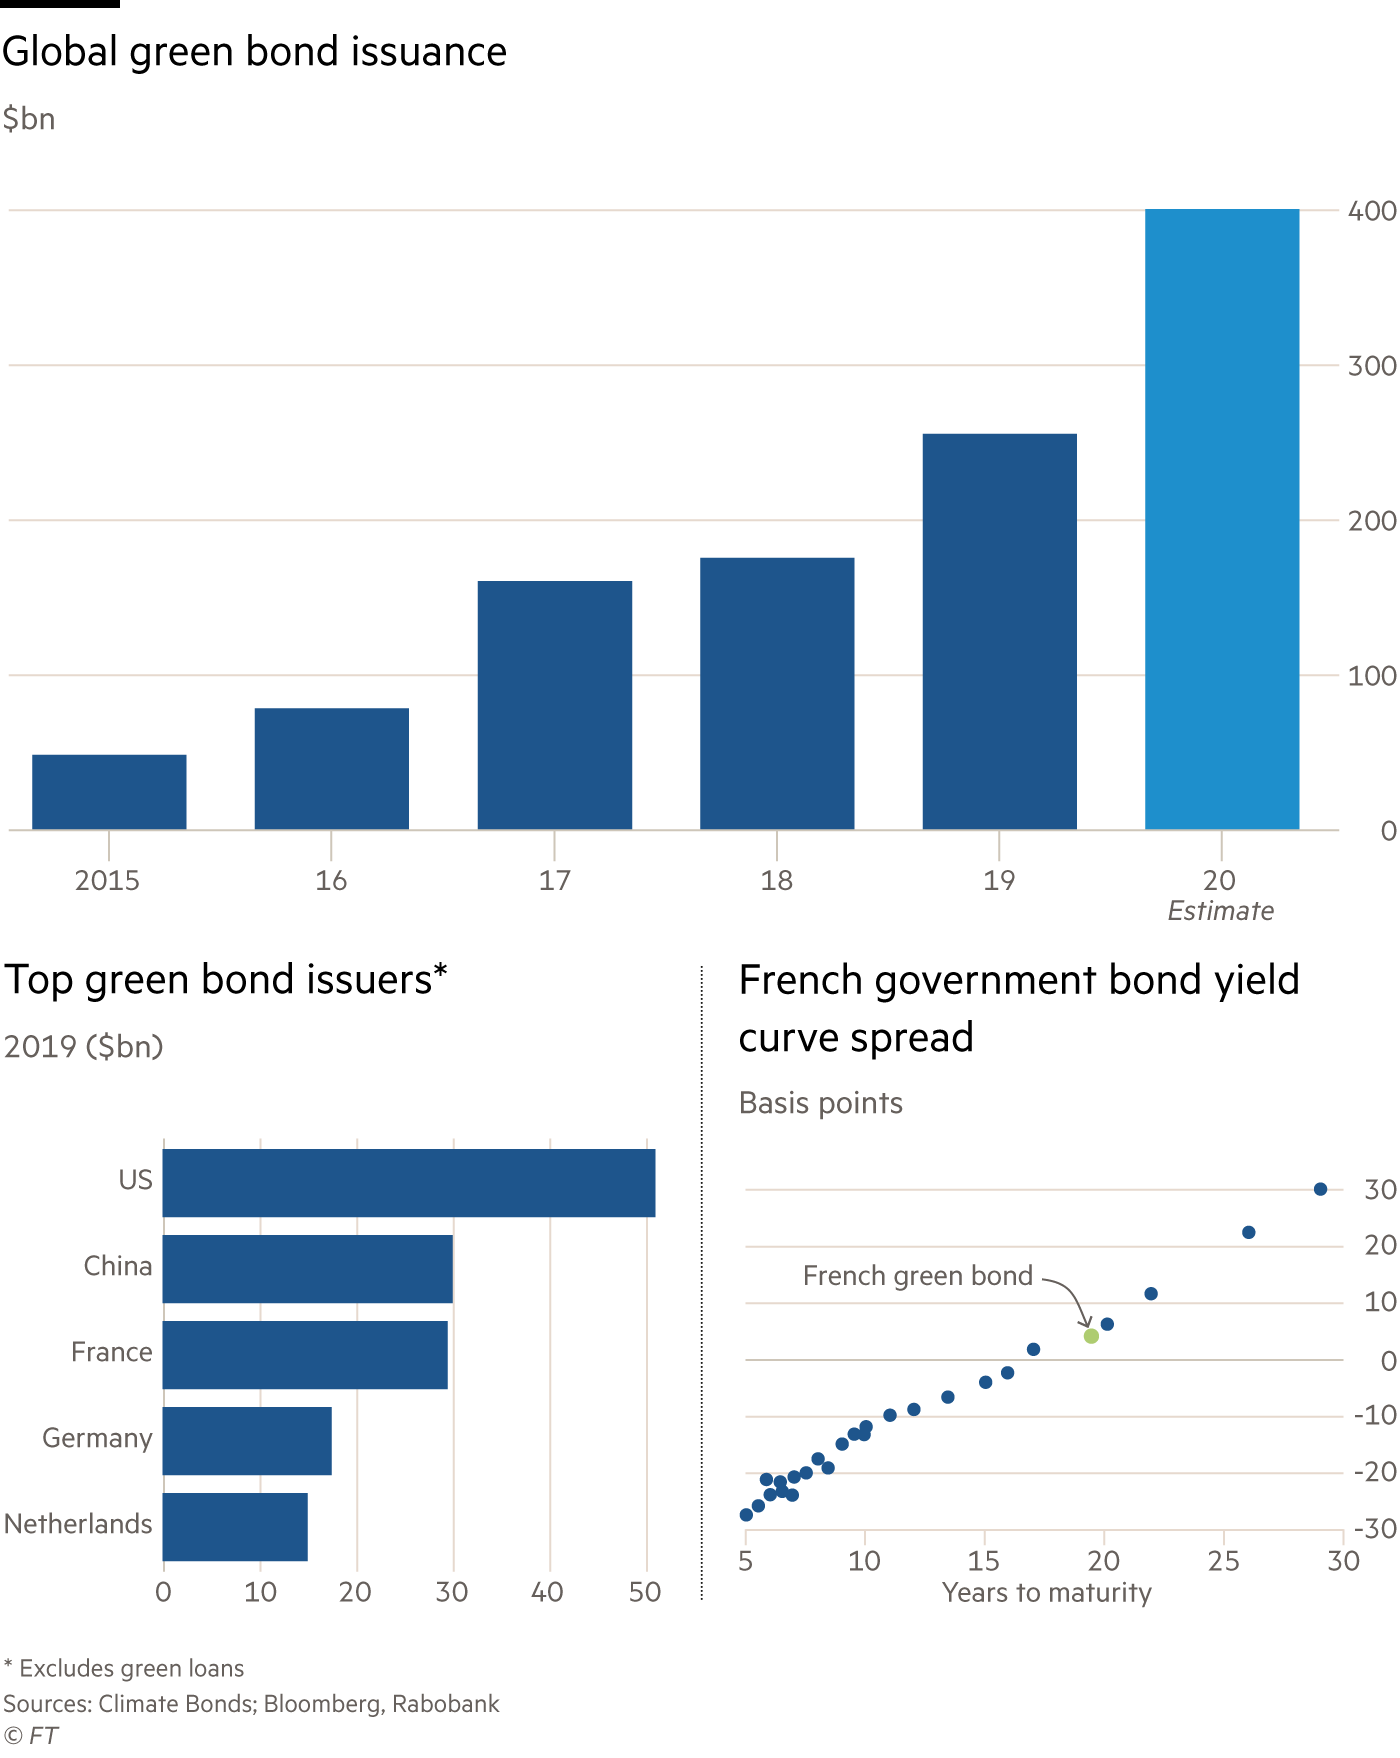 Charting showing global green bond issuance